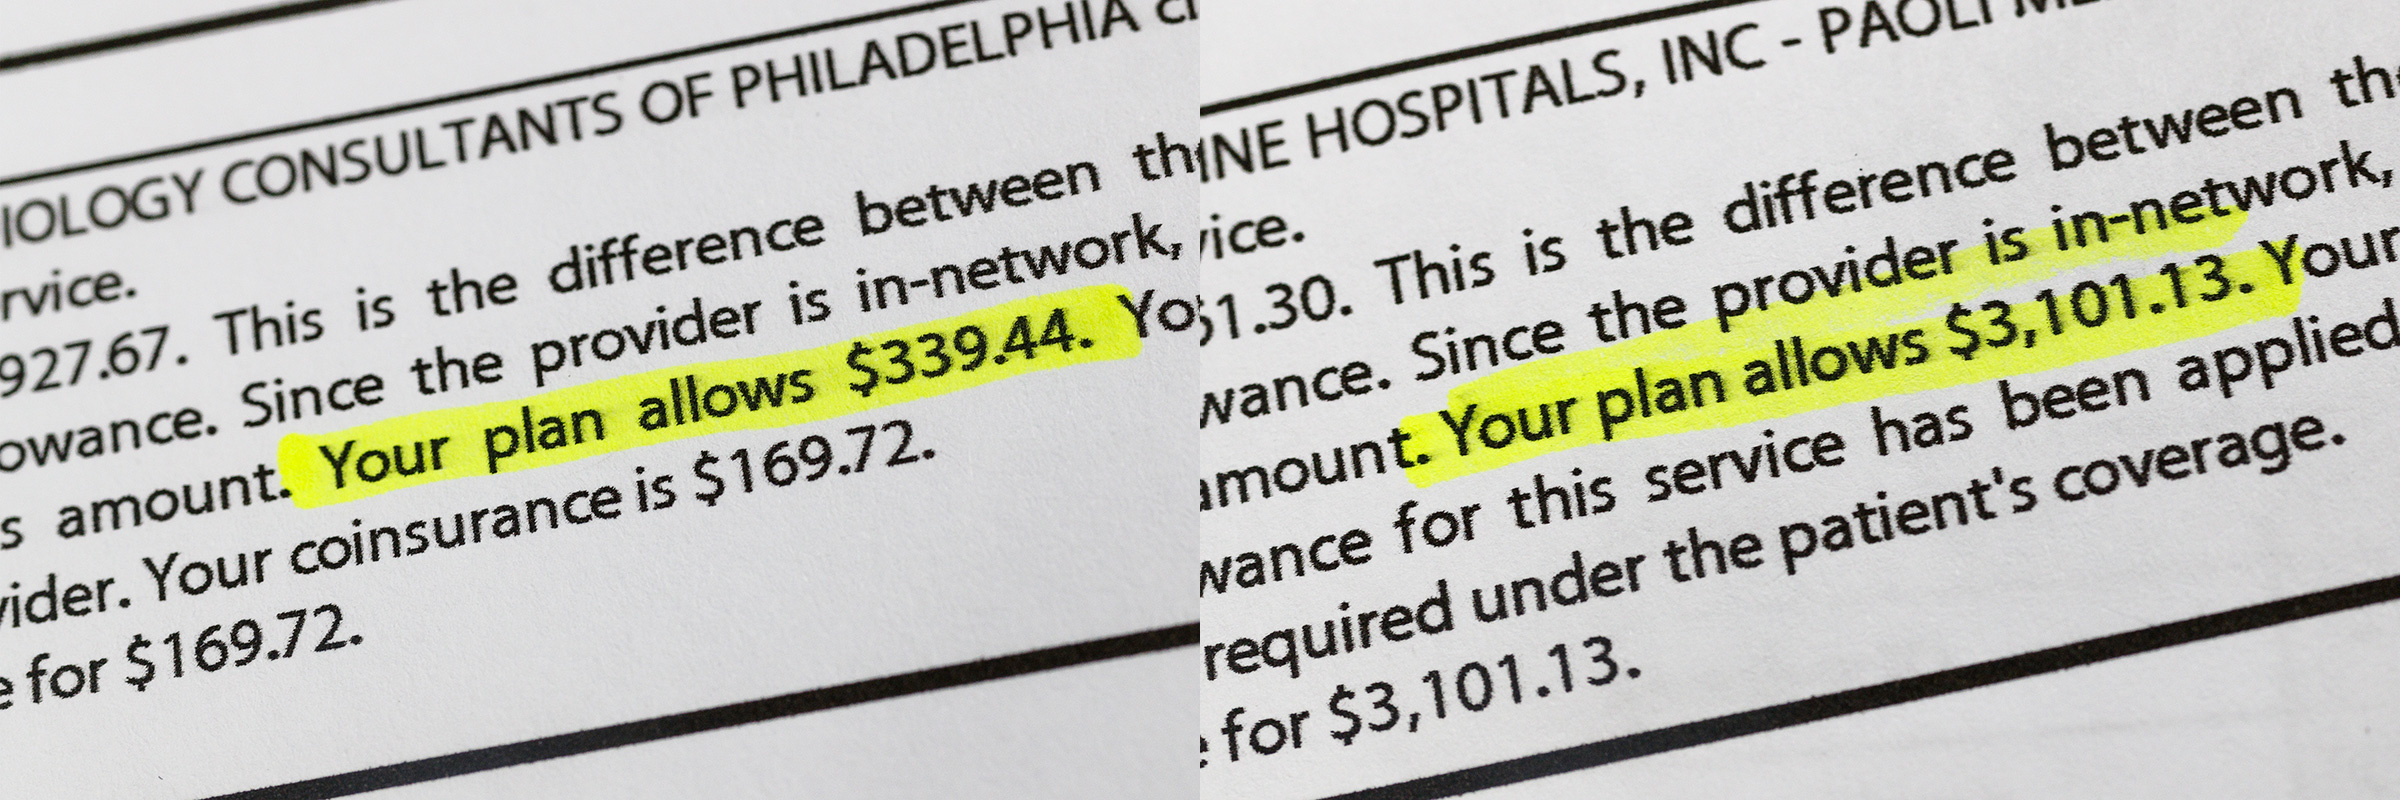 Detail of the first bill George Hahn received for $339.44, left, and his second bill for $3,101.13, right, for both echocardiograms at Paoli Hospital.